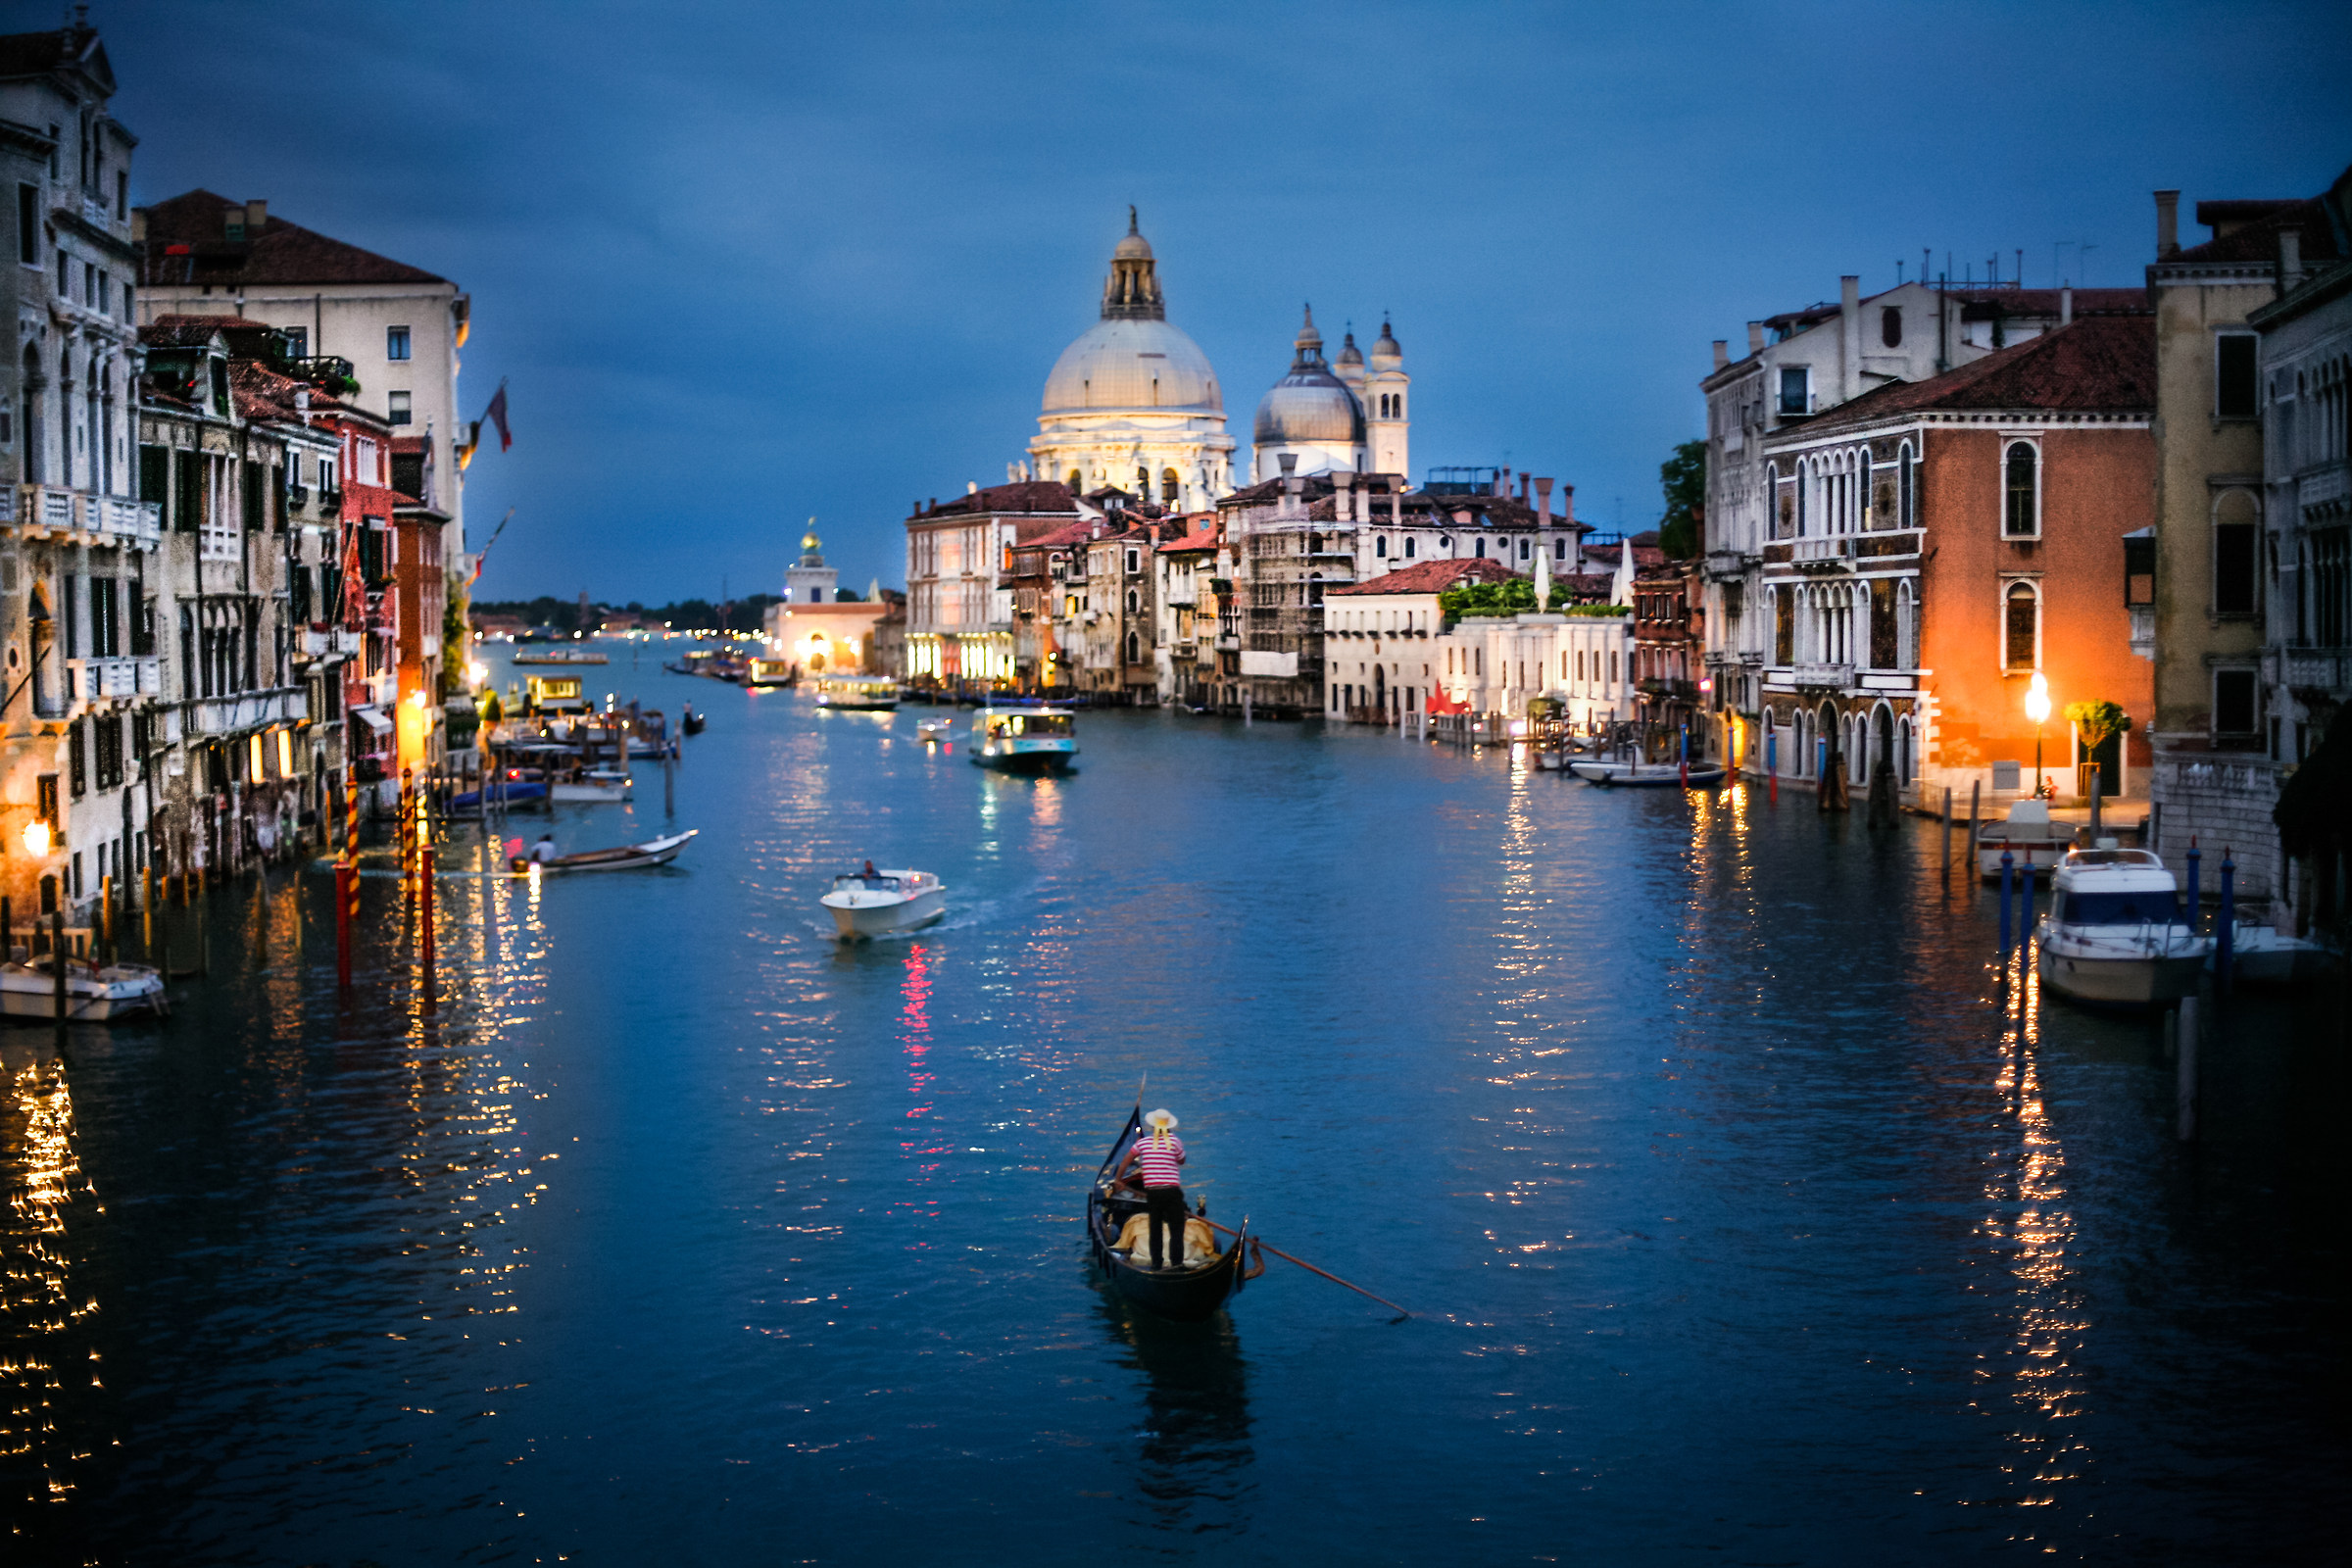 Blue hour at the Grand Canal...